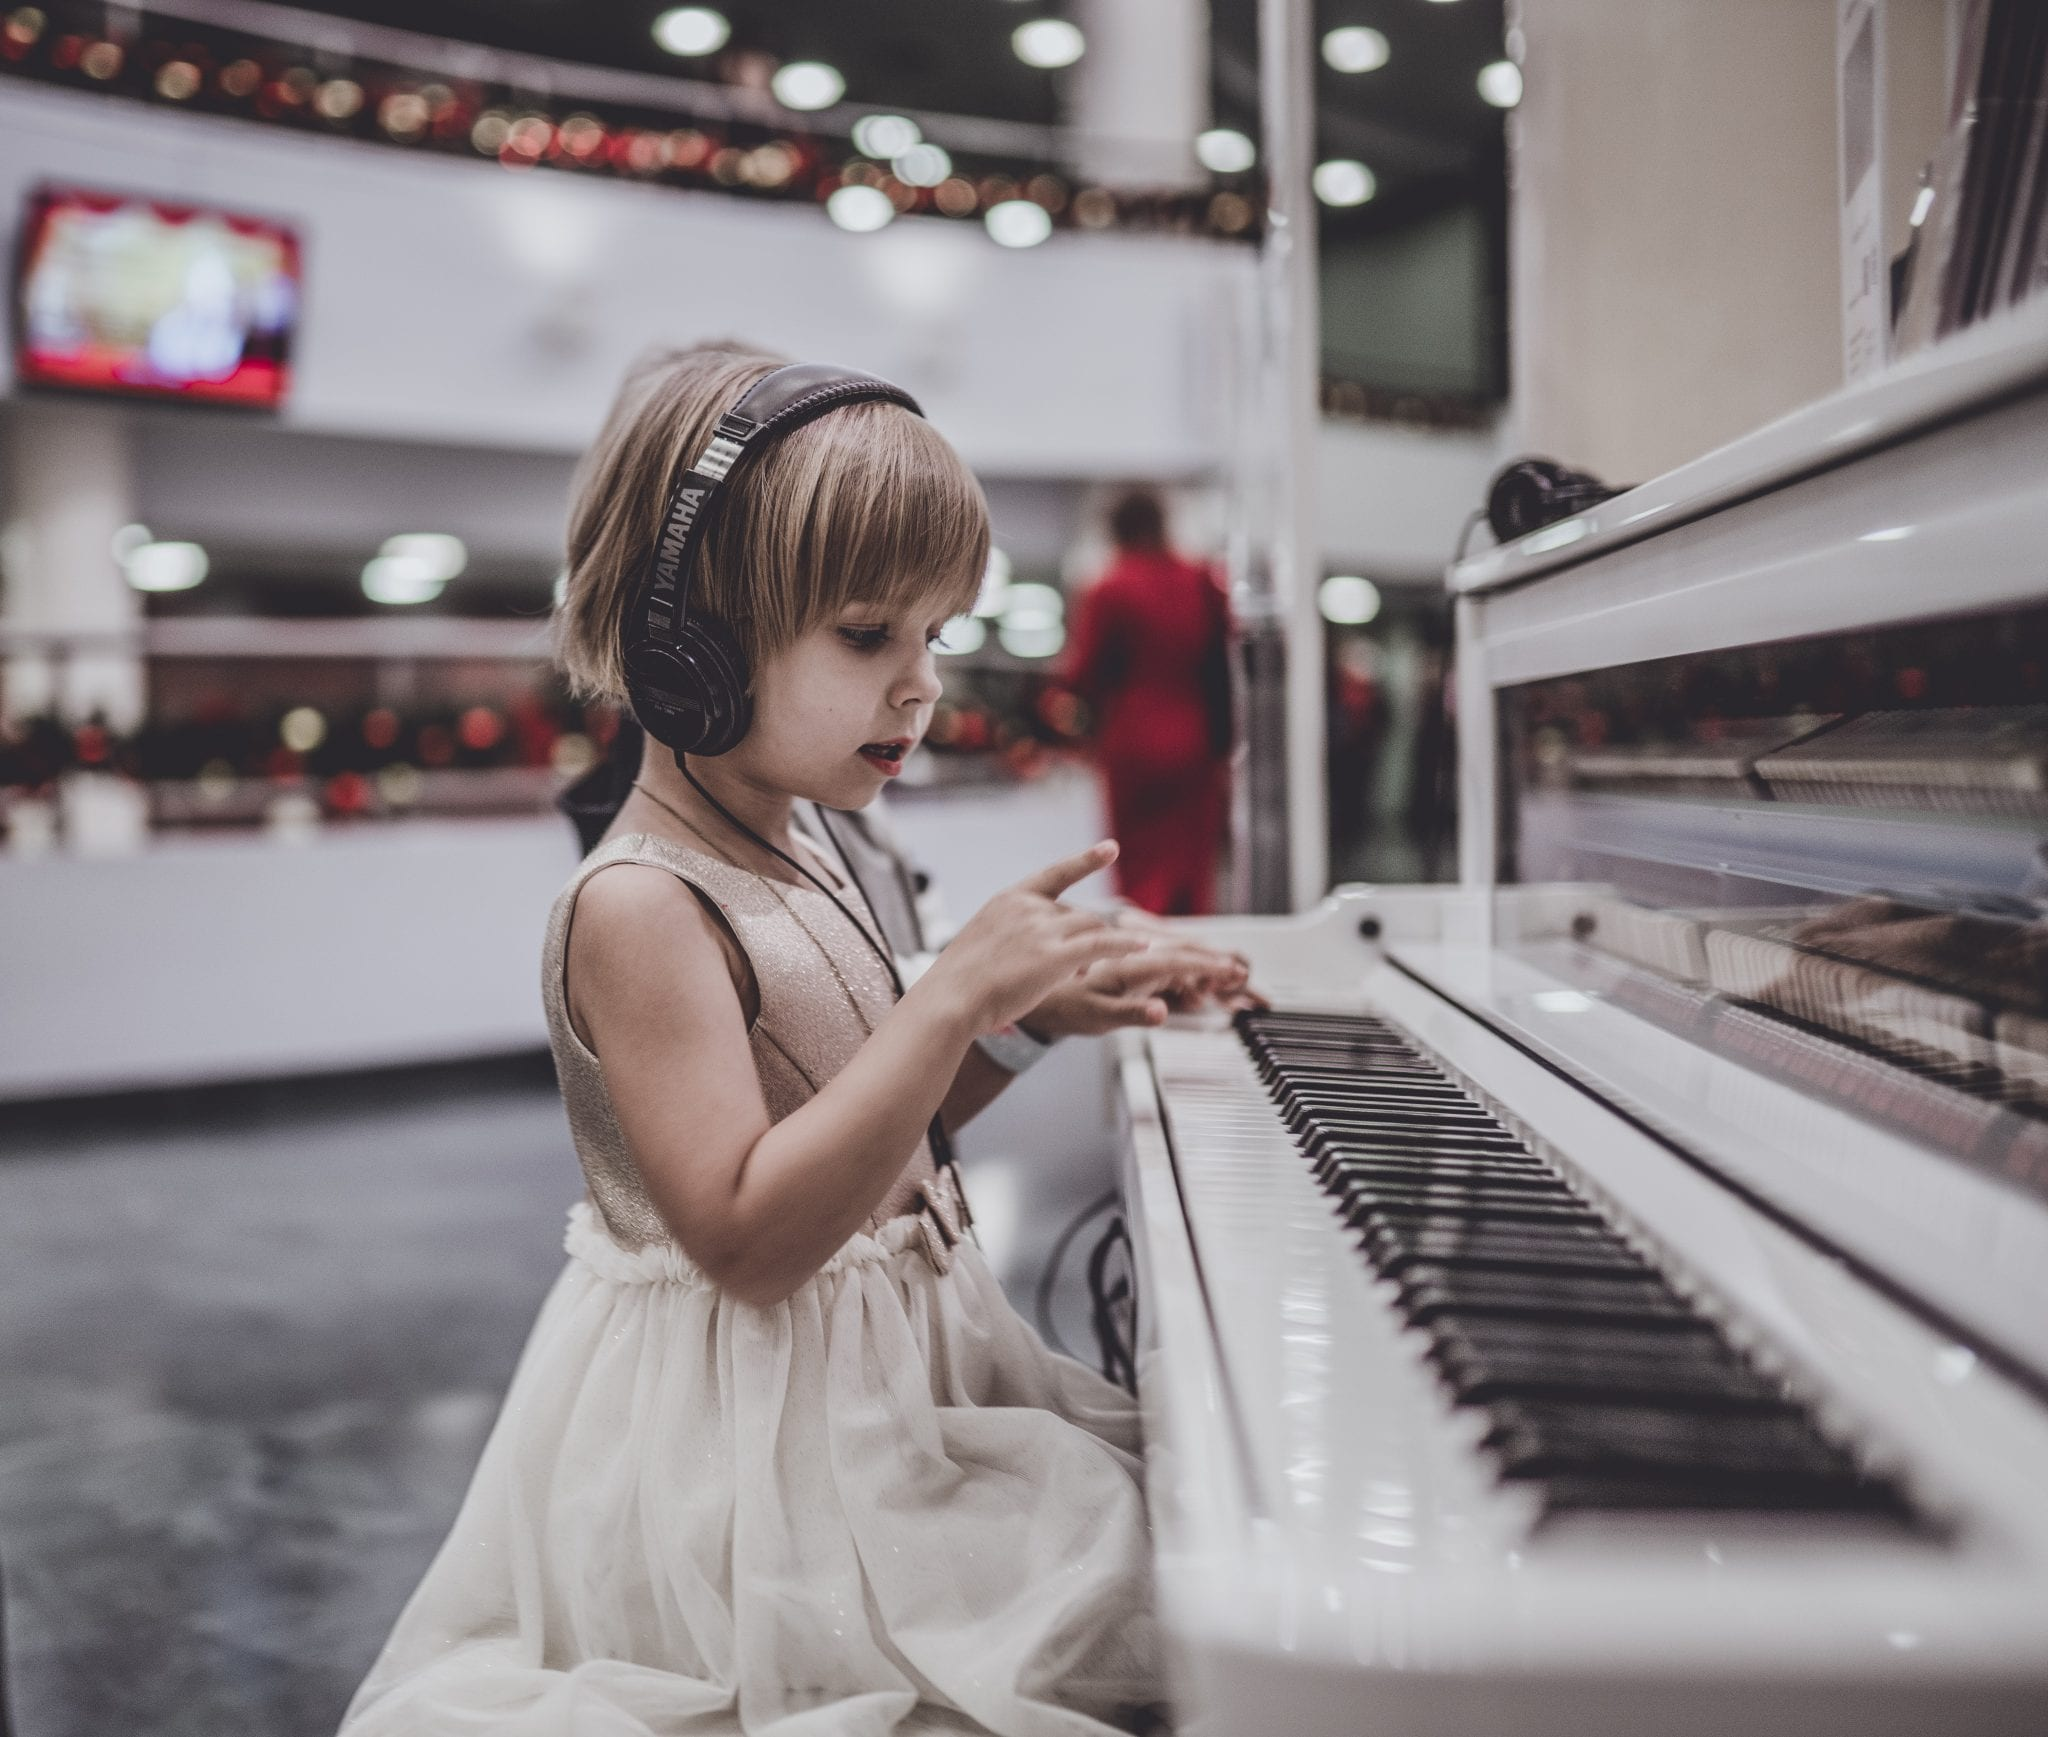 girl wearing headphones sitting in front of white piano